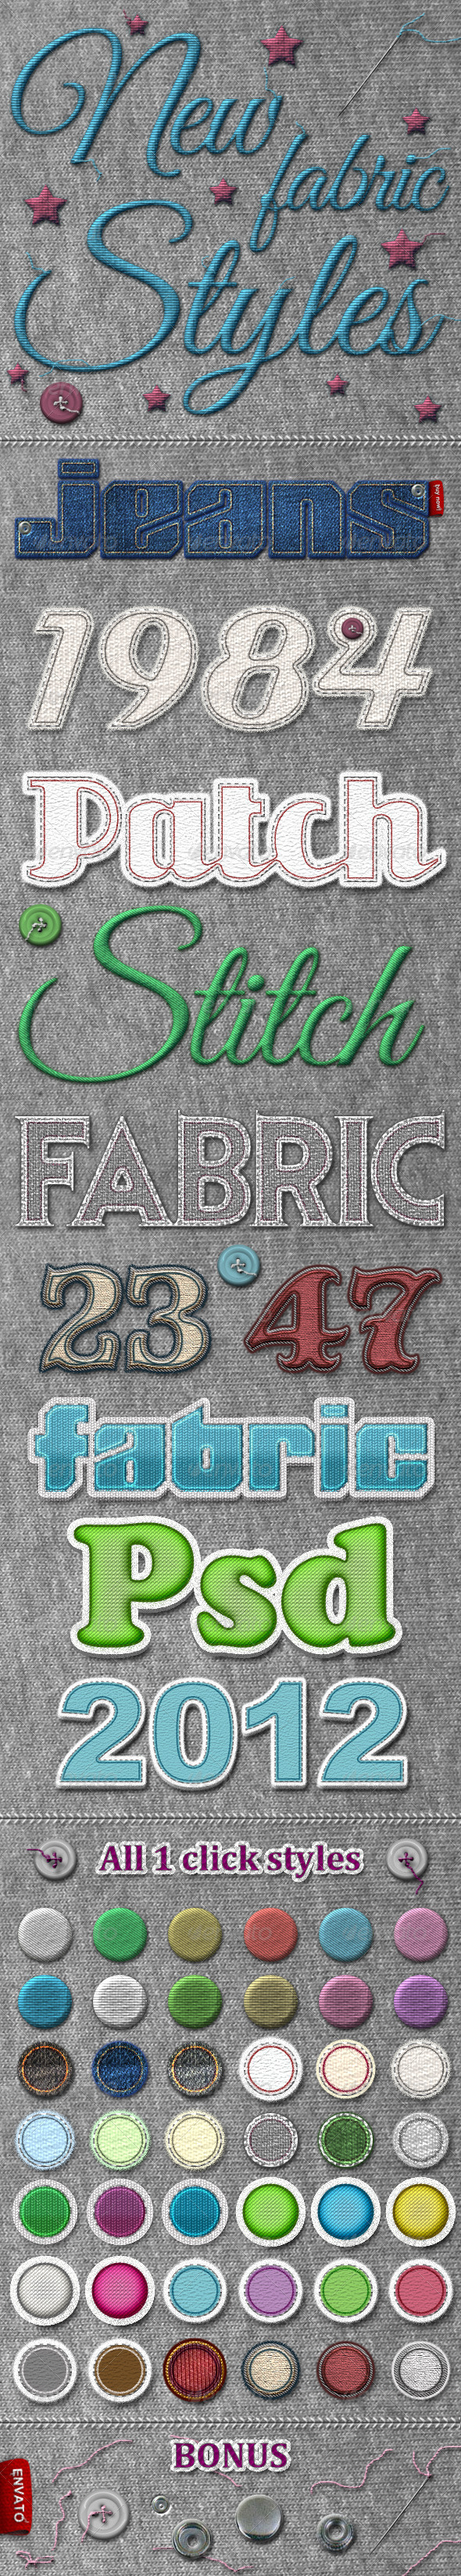 New Fabric Styles - Text Effects Styles